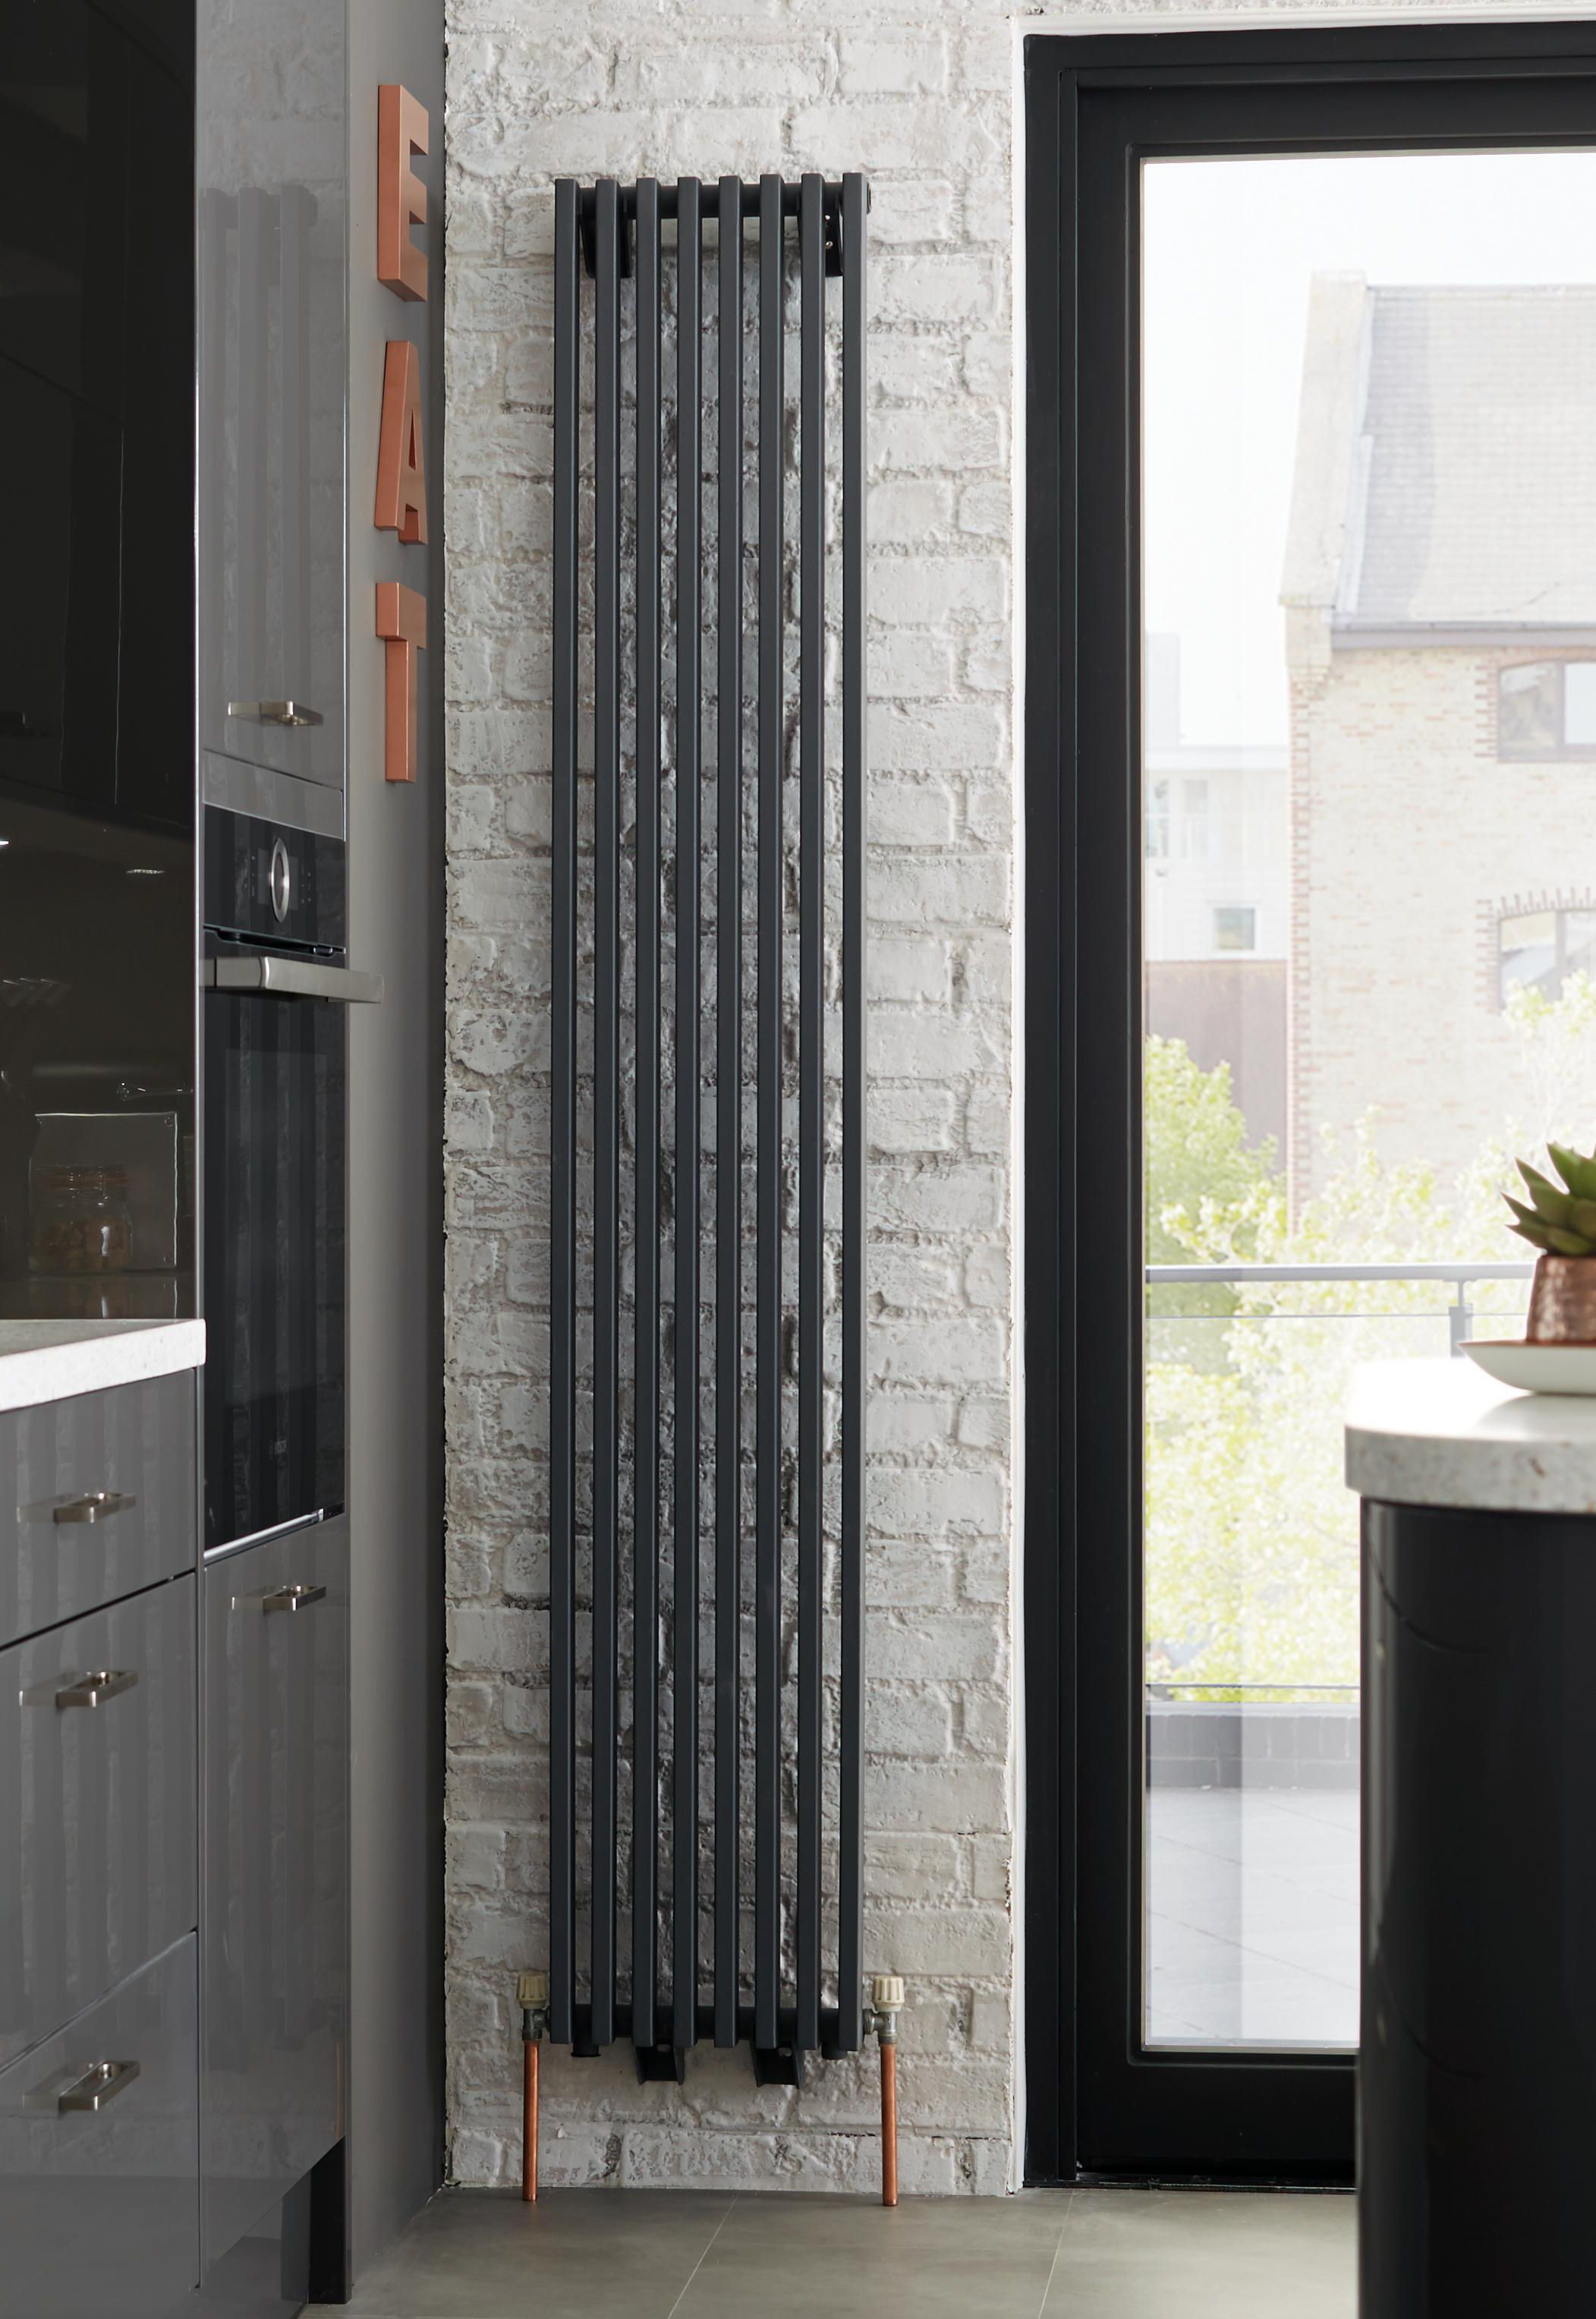 designer kitchen radiators kudox xylo vertical radiator anthracite h 1800 mm w 300 3256